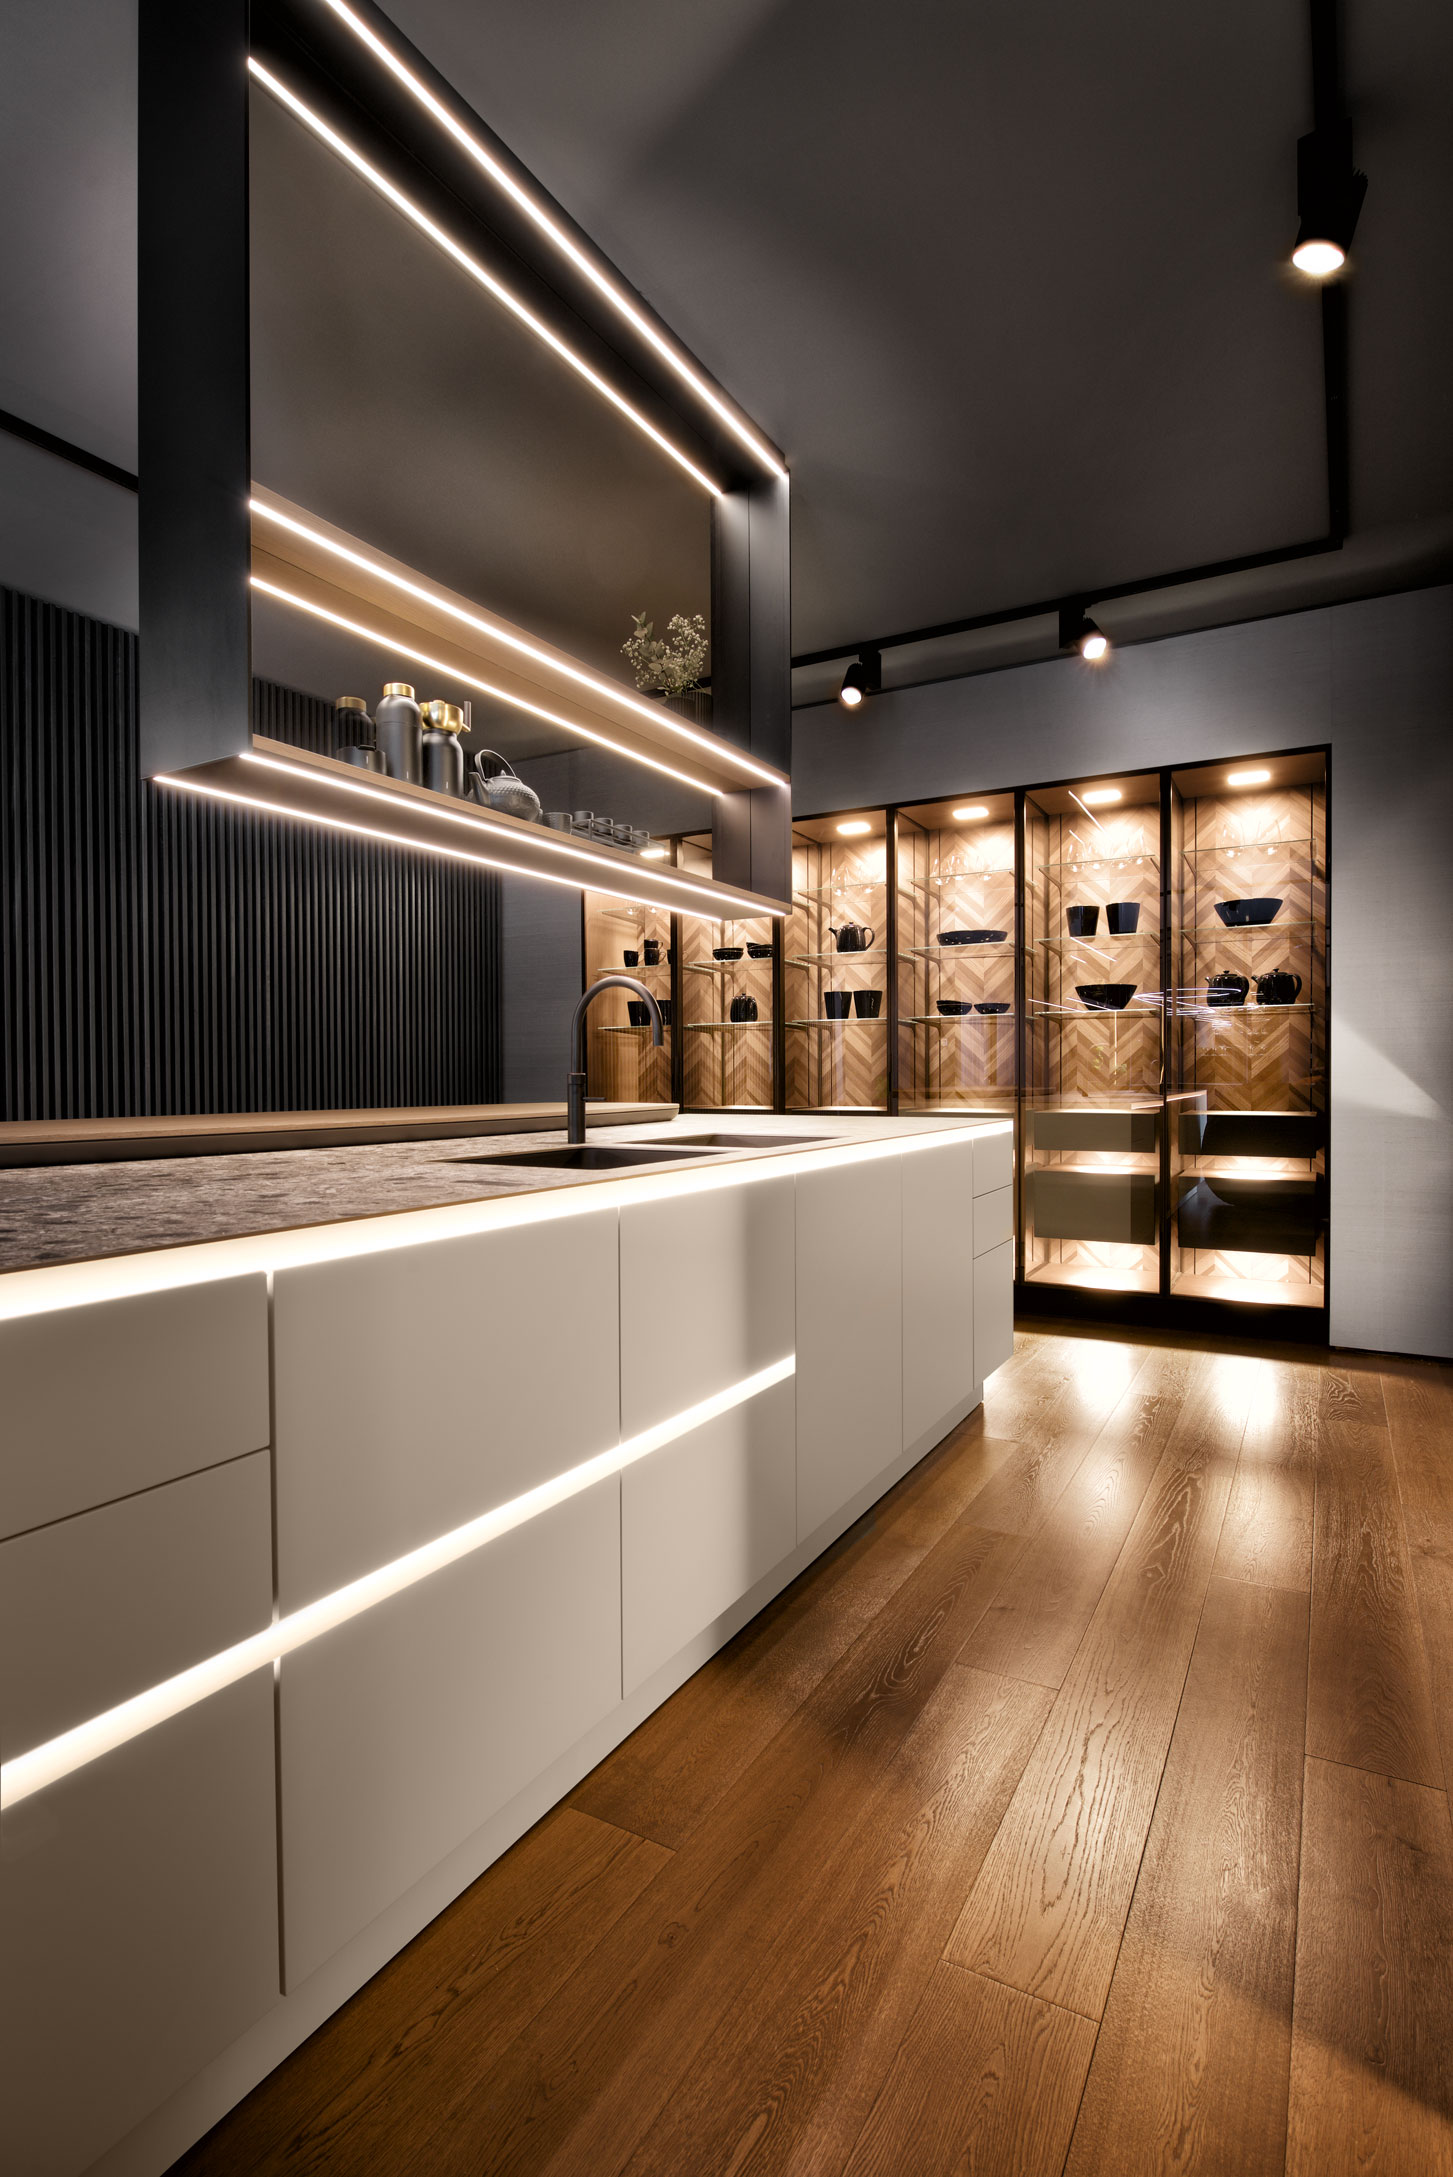 The Quot New Handle Free Siematic Quot Arena Kitchens